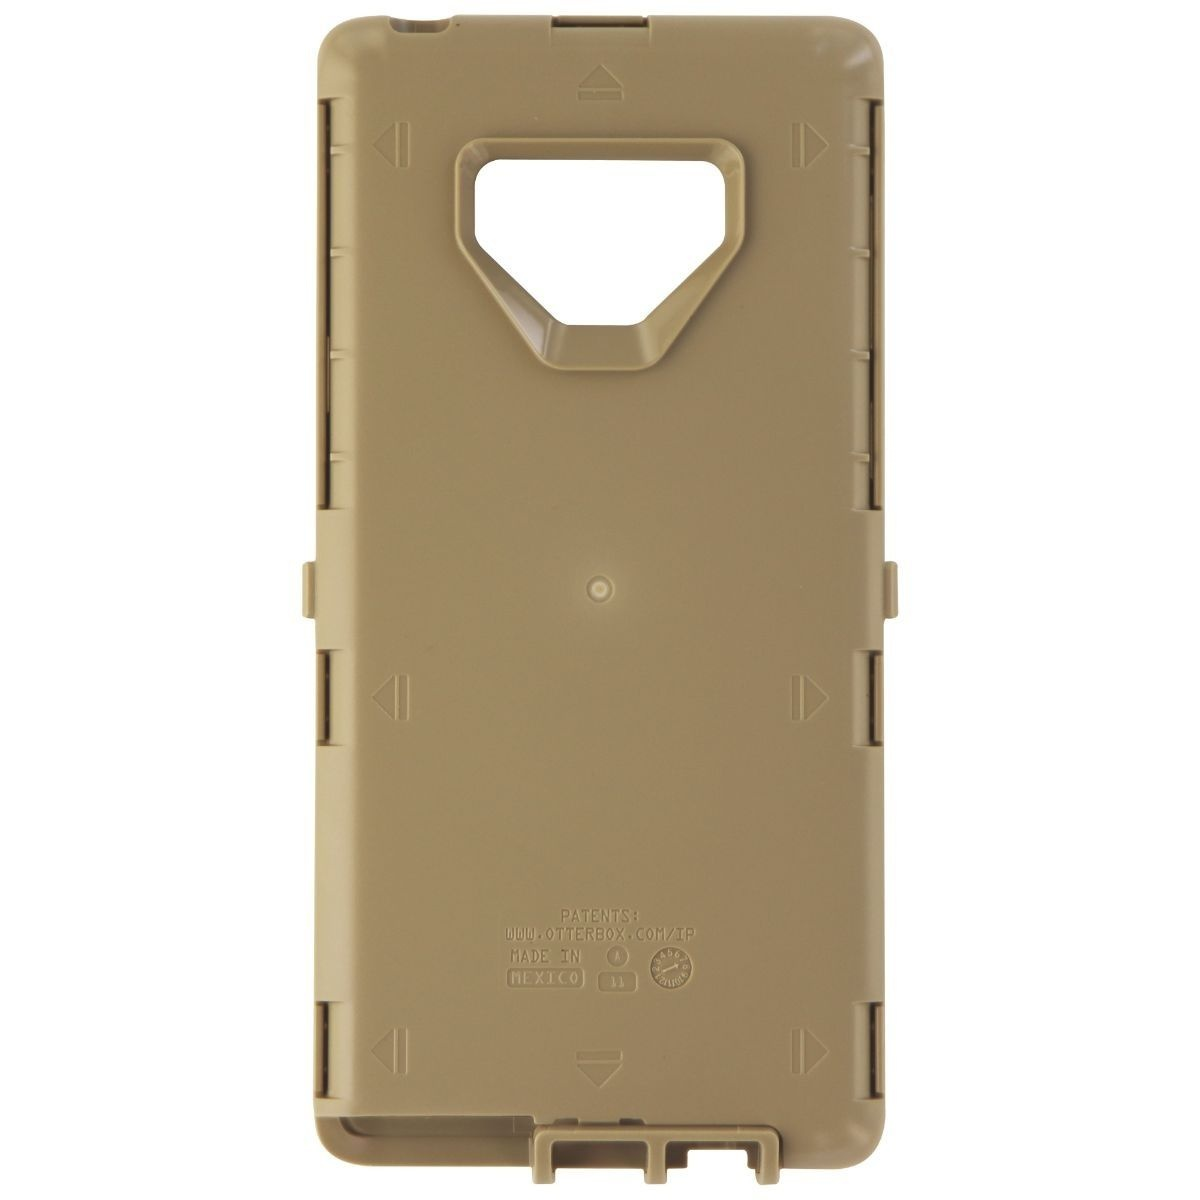 OtterBox Defender Series Replacement Interior Shell for Samsung Note